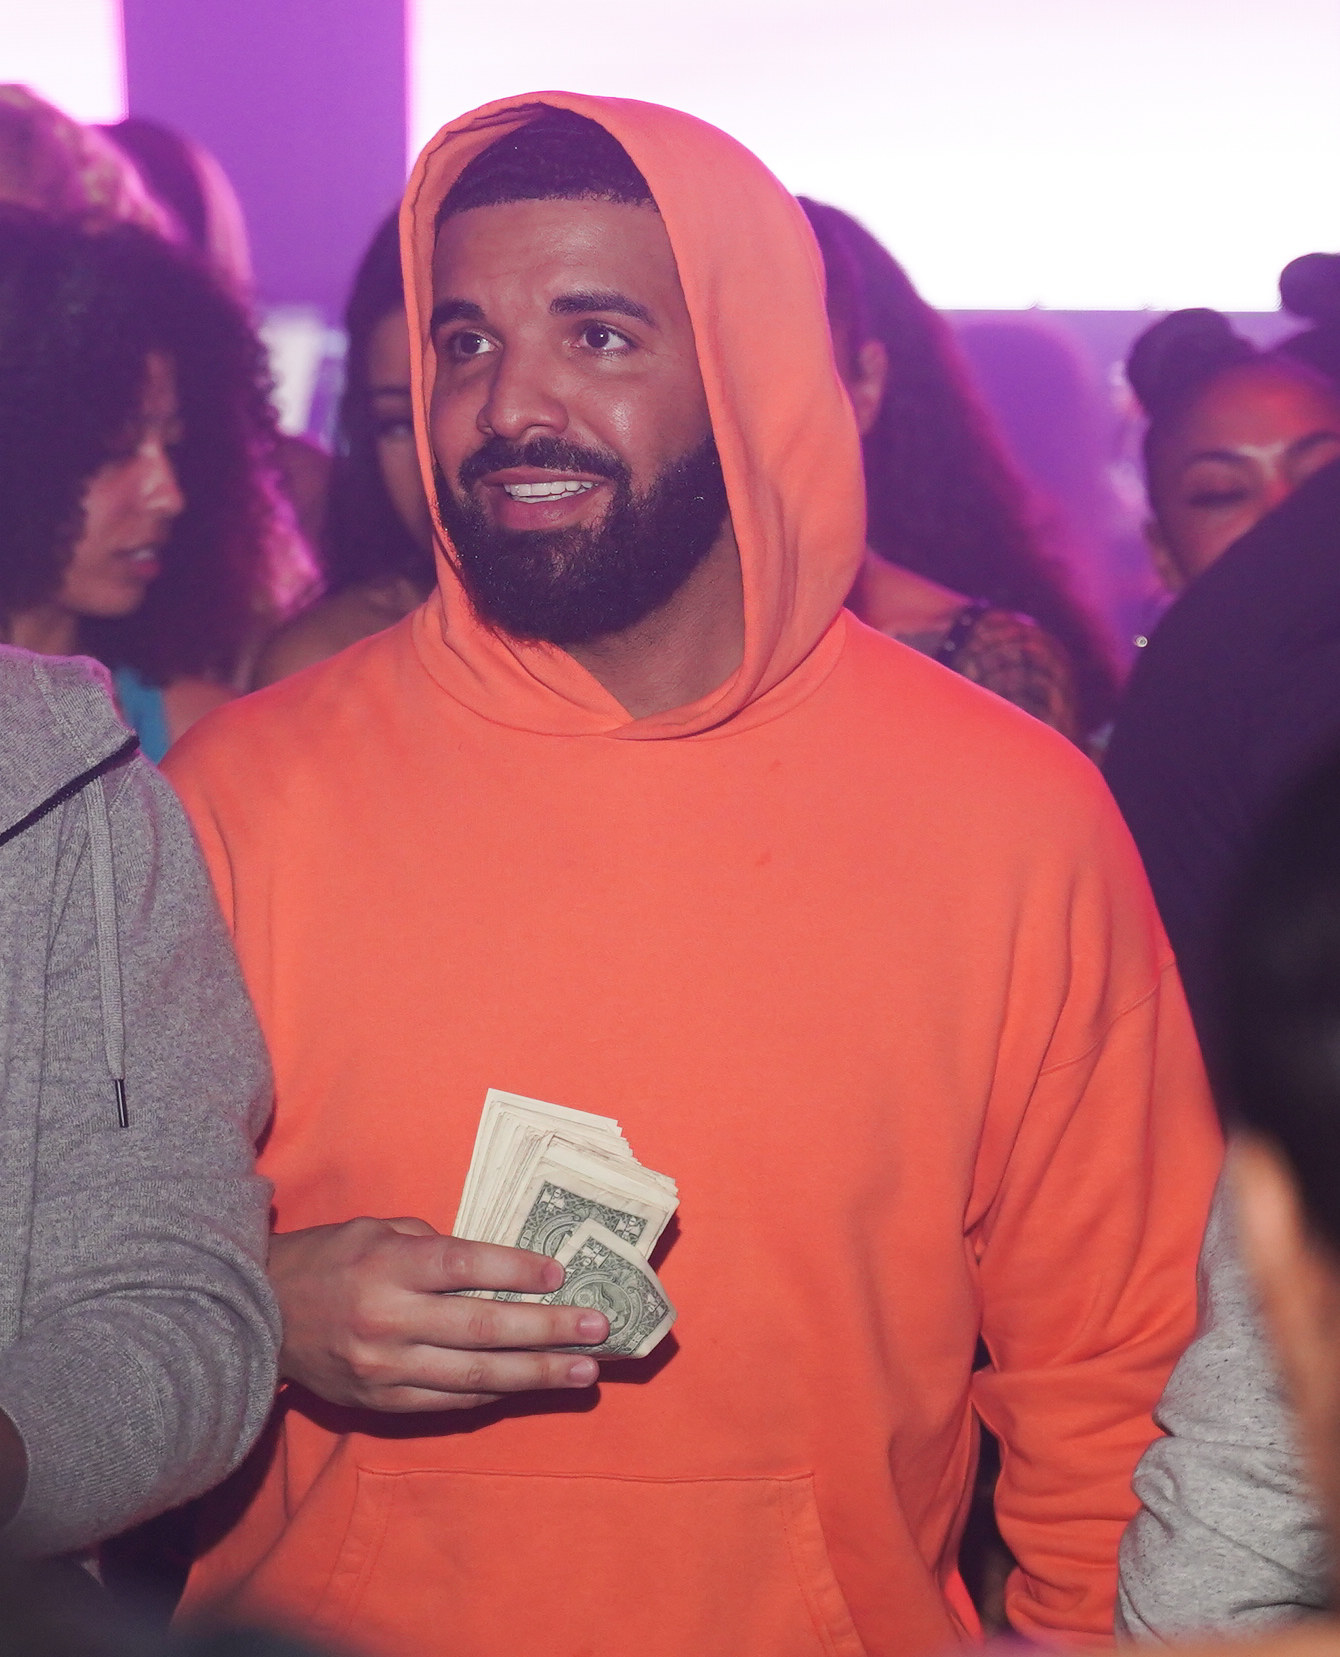 Drake in a hoodie and holding a roll of bills